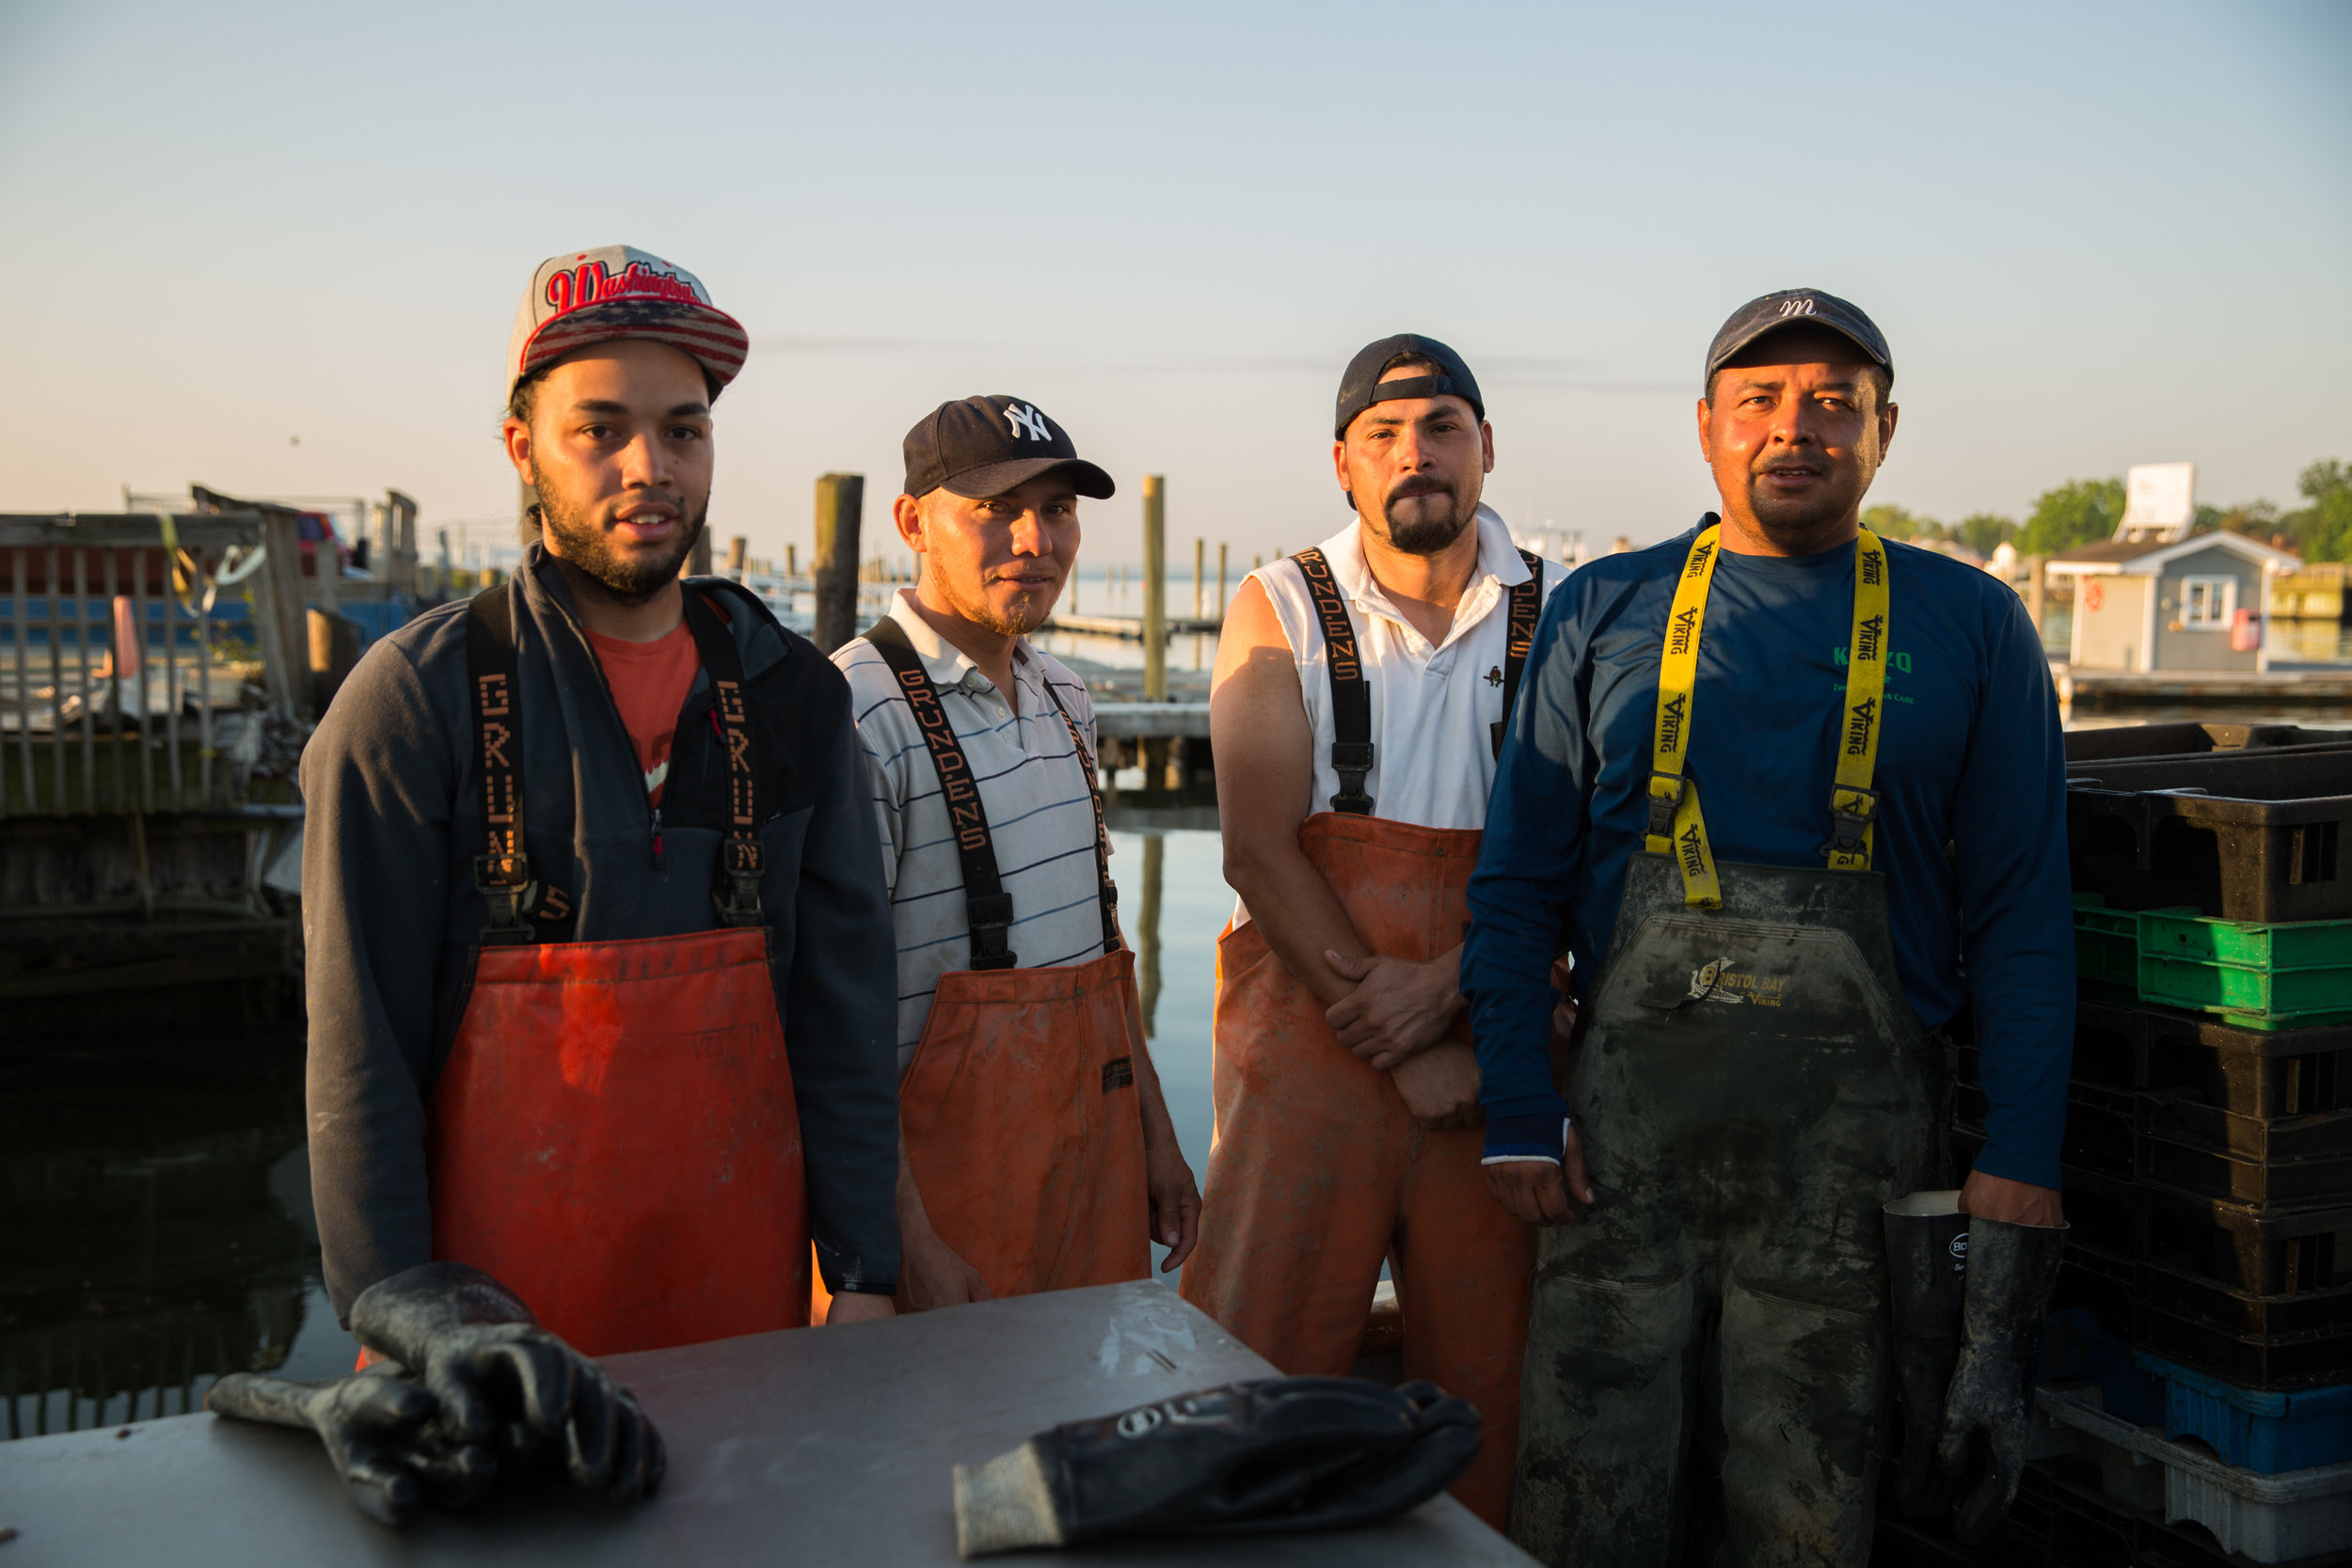 Smiles from crew members. Source: www.stellamaroysters.com